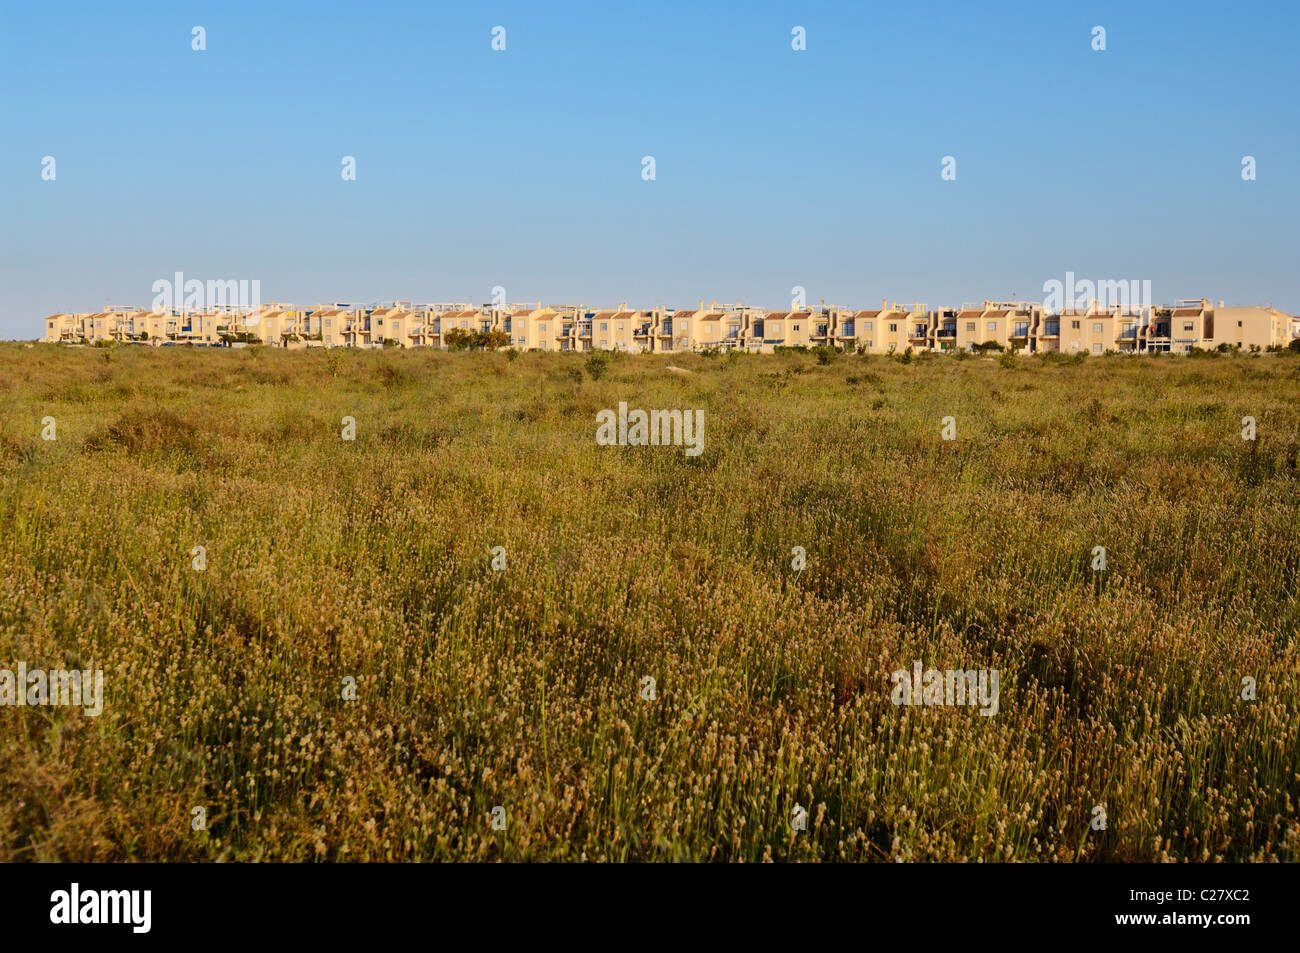 Urban sprawl on the edge of the La Mata Natural Park, Torrevieja, Alicante Province, Spain. - Stock Image